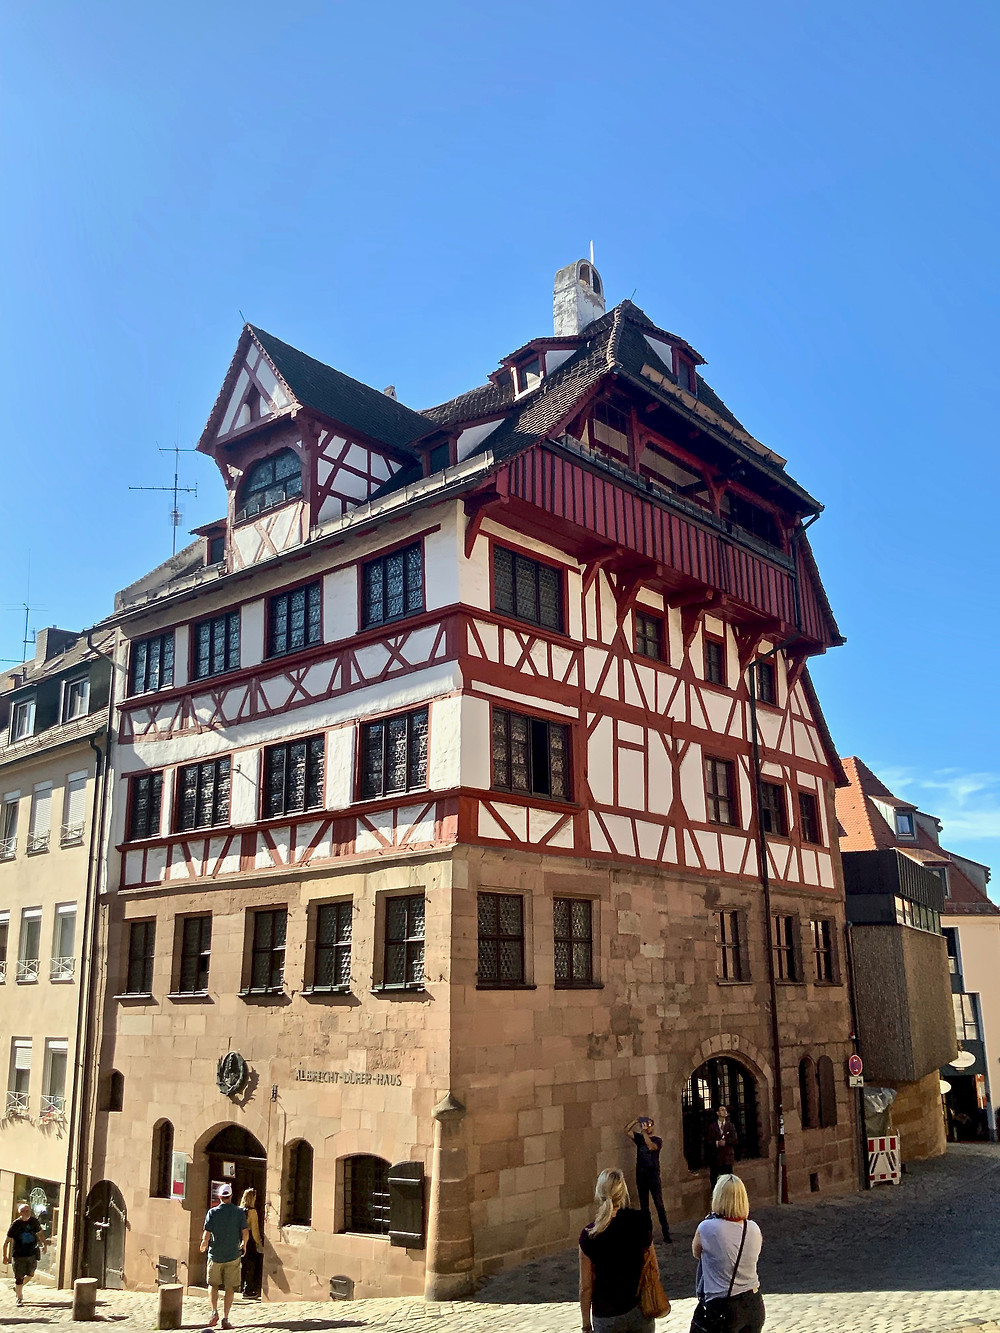 the Albrecht Durer Museum, one of the few surviving medieval homes in Nuremberg